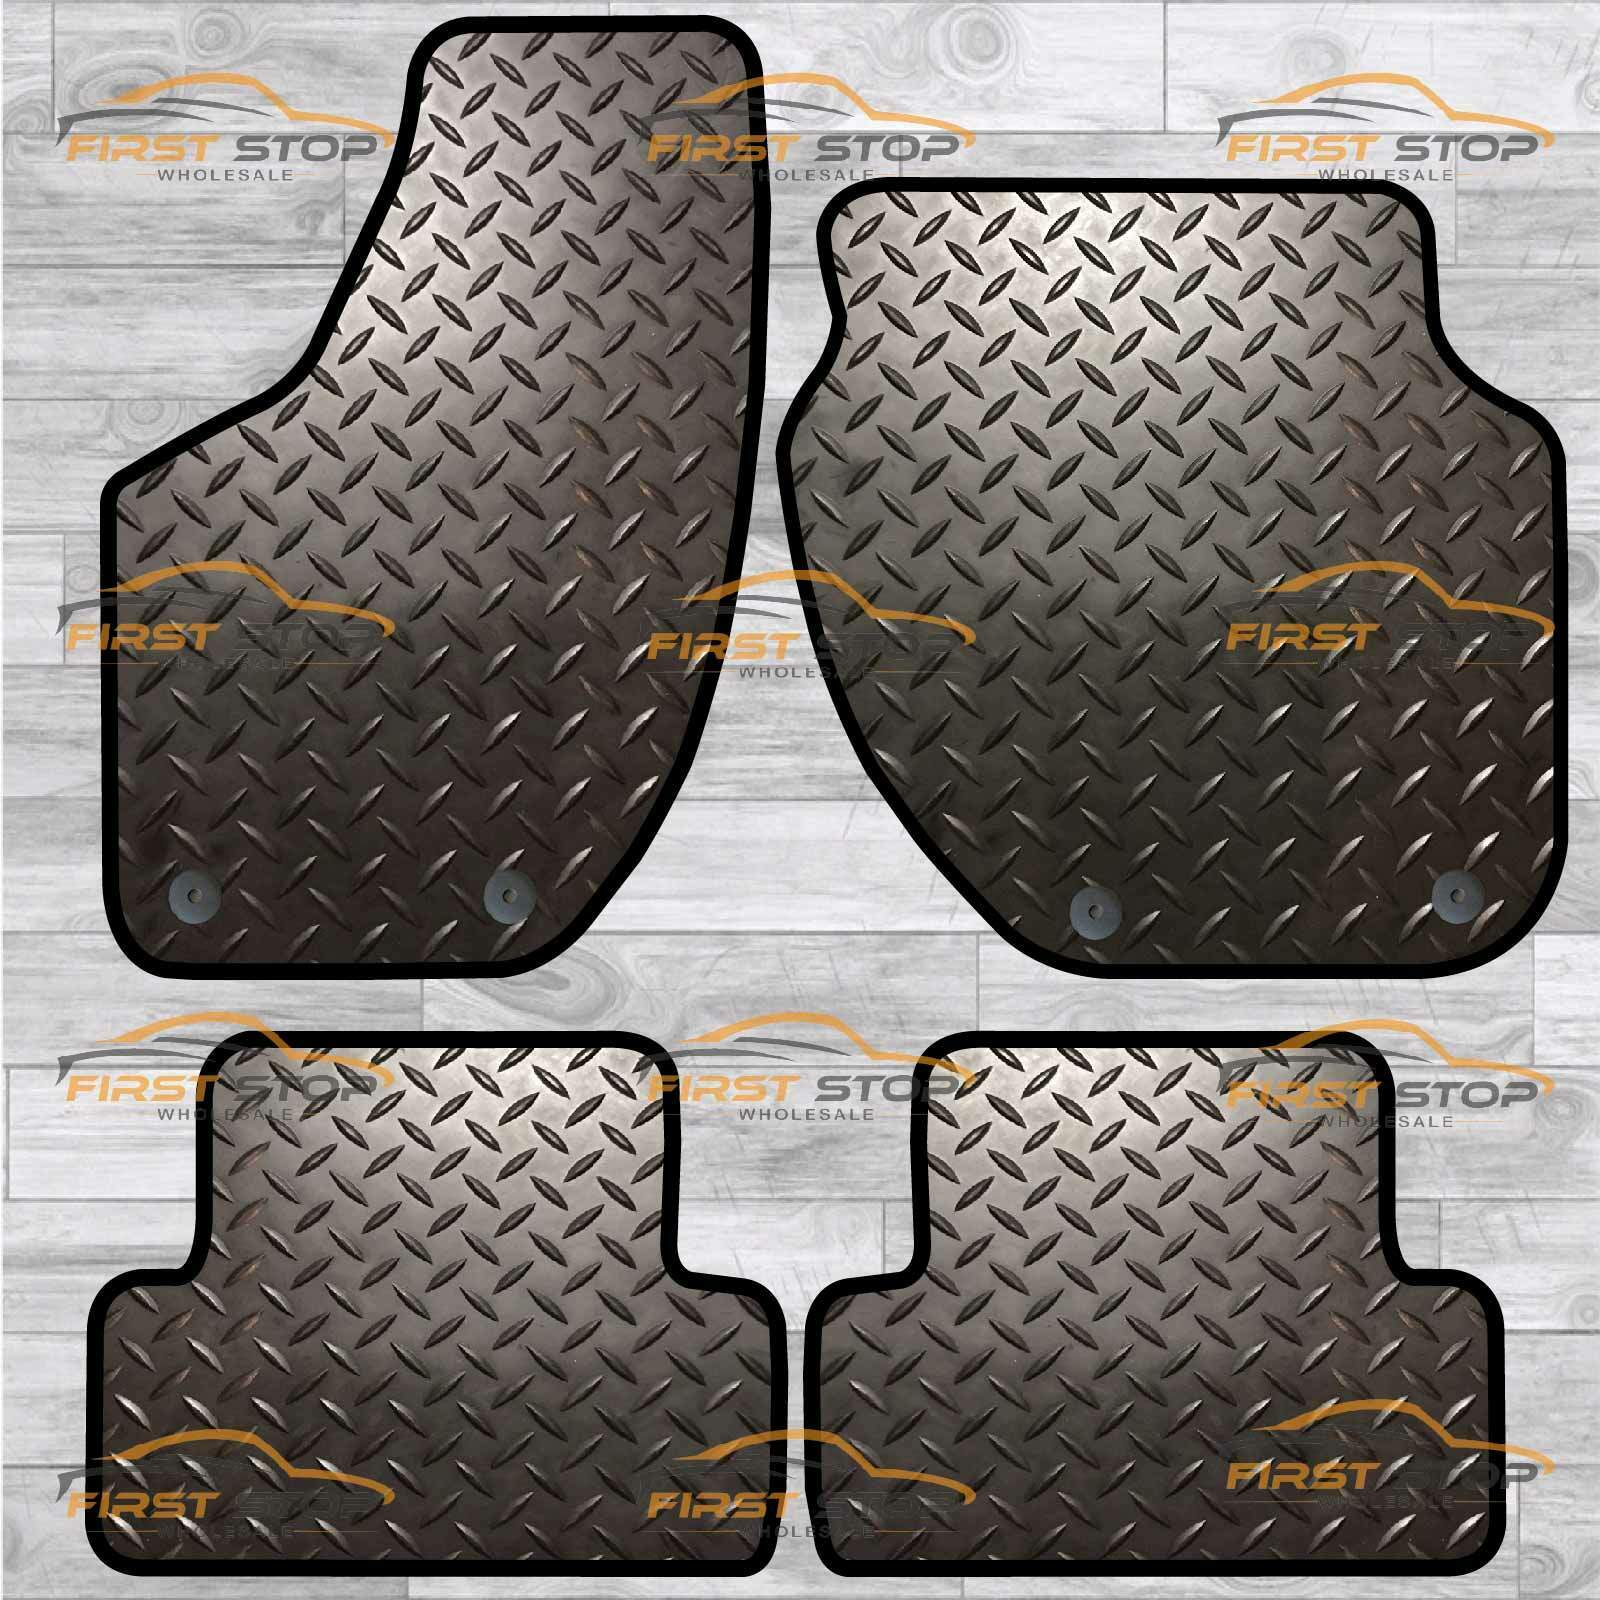 VOLVO S80 06 8 CLIPS FITTED CUSTOM TAILORED RUBBER Car Floor Mats HEAVY DUTY